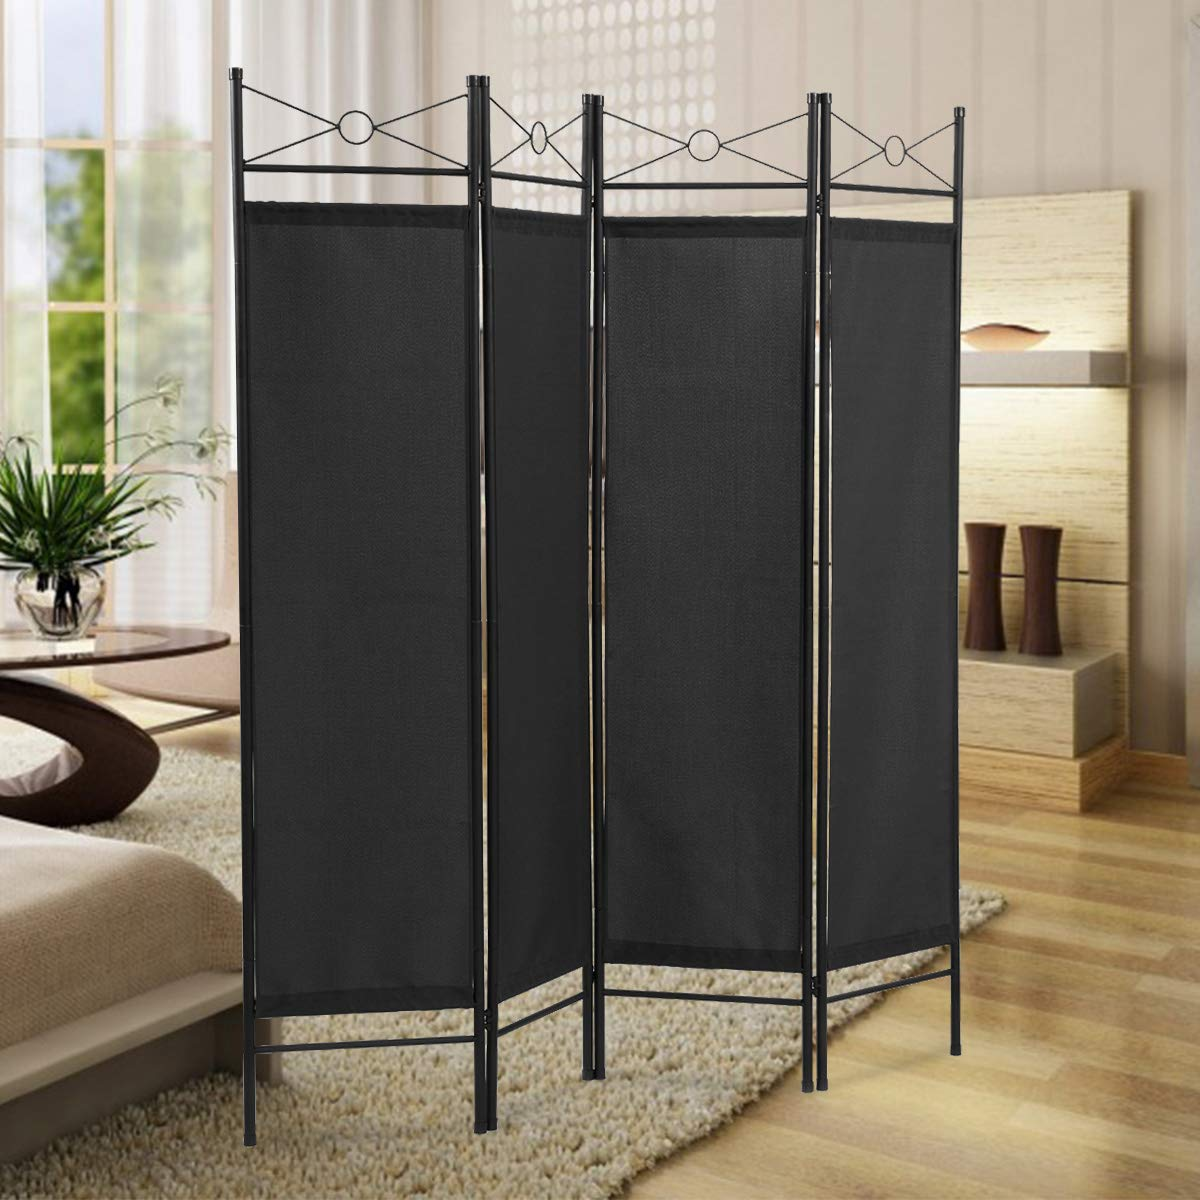 Sandinrayli 4-Panel Steel Room Divider Screen Fabric Folding Partition Home Office Privacy Screen, Black: Industrial & Scientific